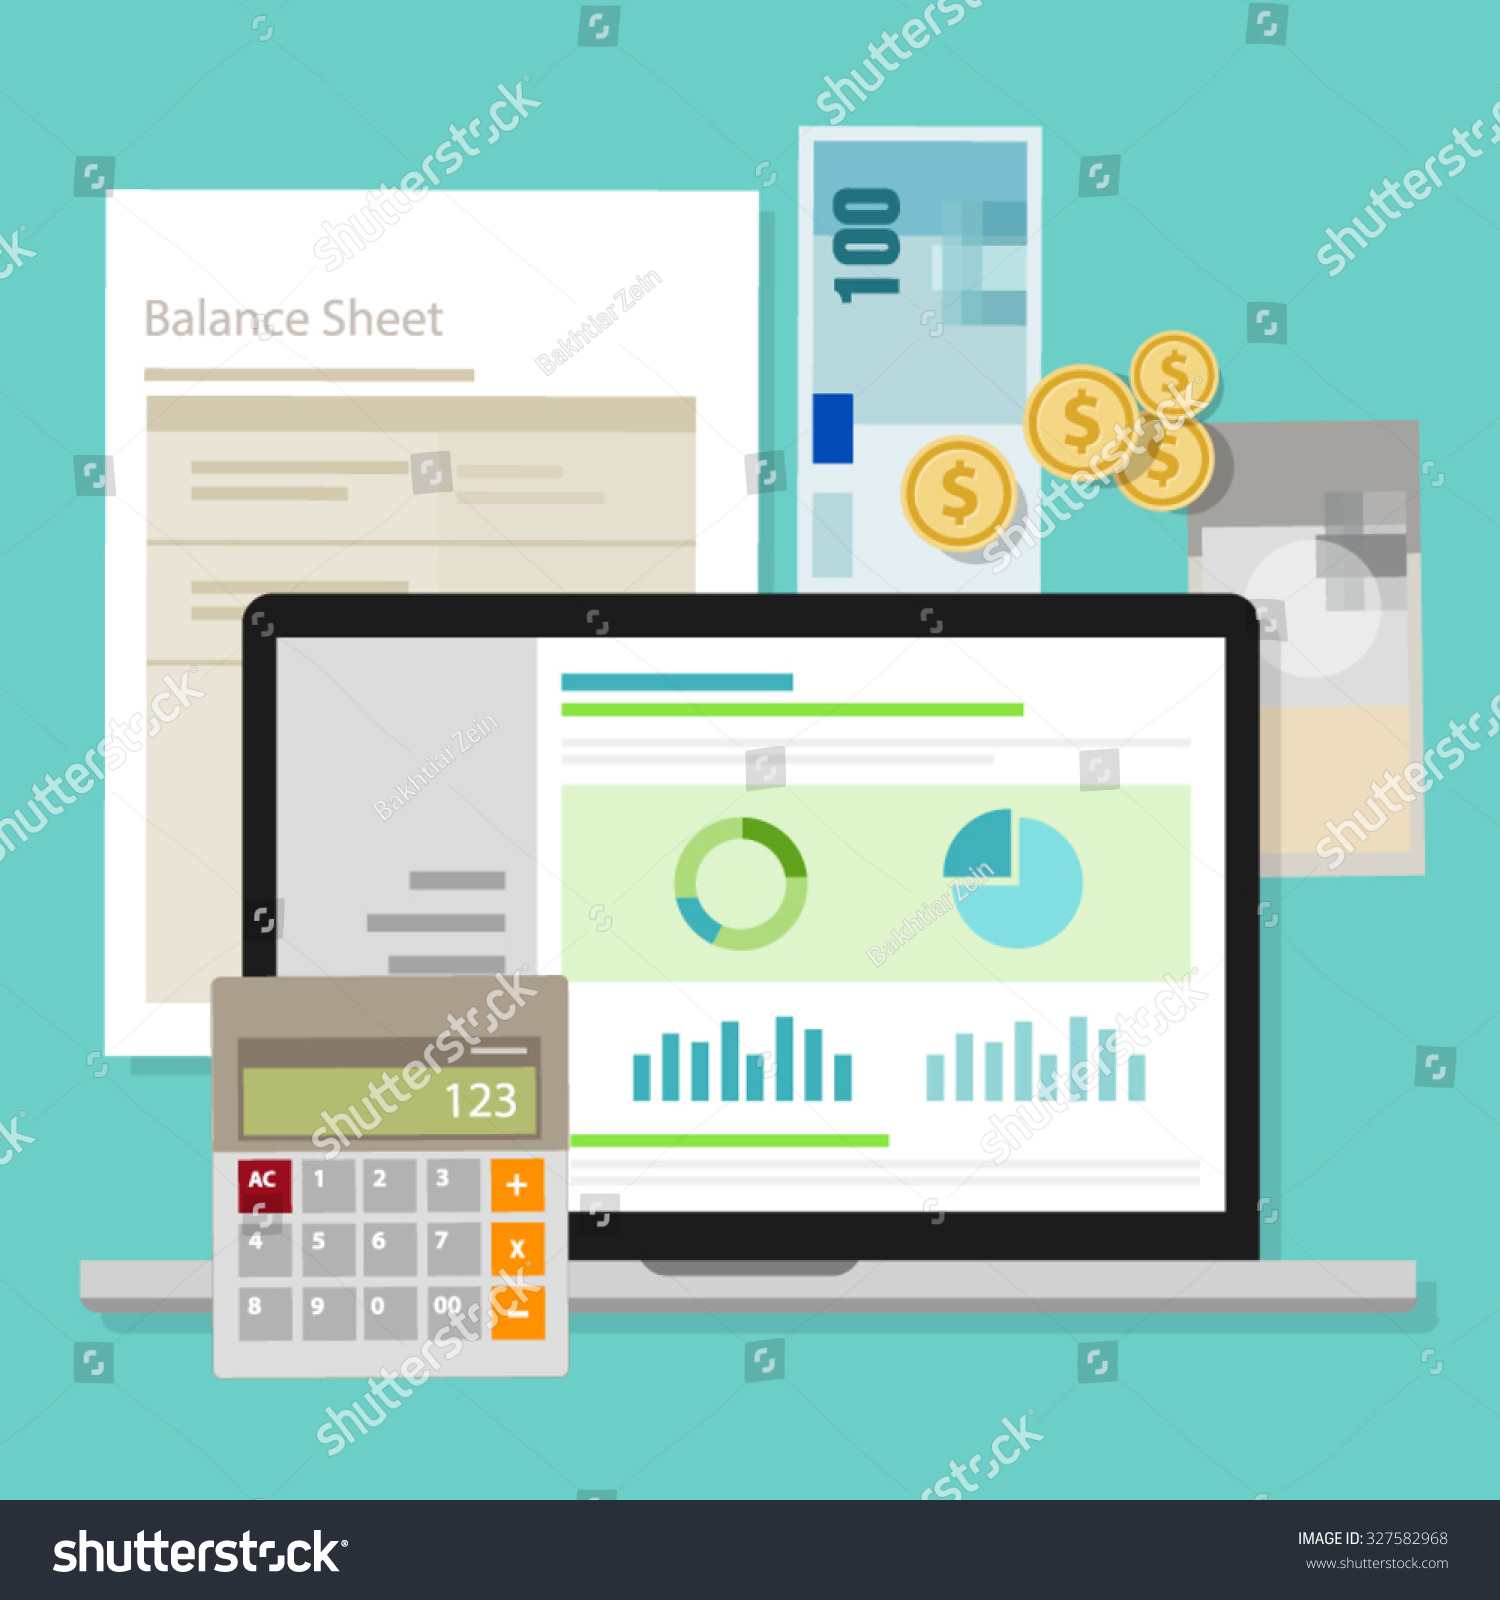 Accounting software balance sheet money calculator Vector image software